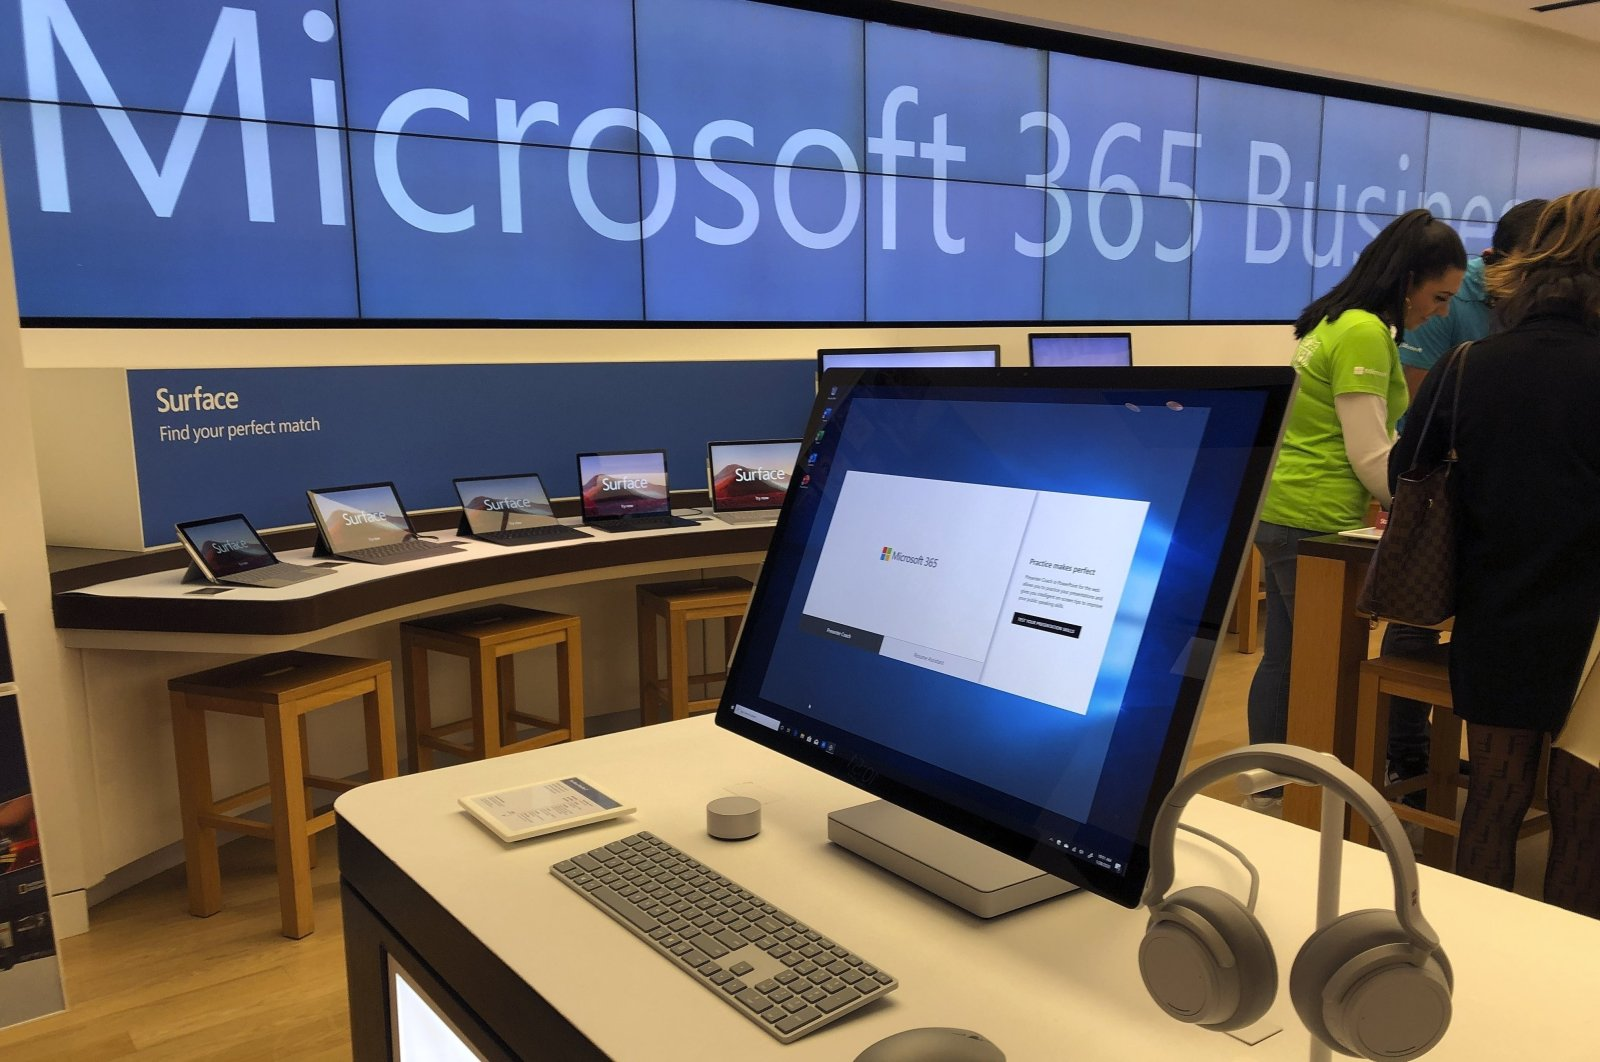 A Microsoft computer is among items displayed at a Microsoft store in suburban Boston, U.S.,Jan. 28, 2020. (AP Photo)